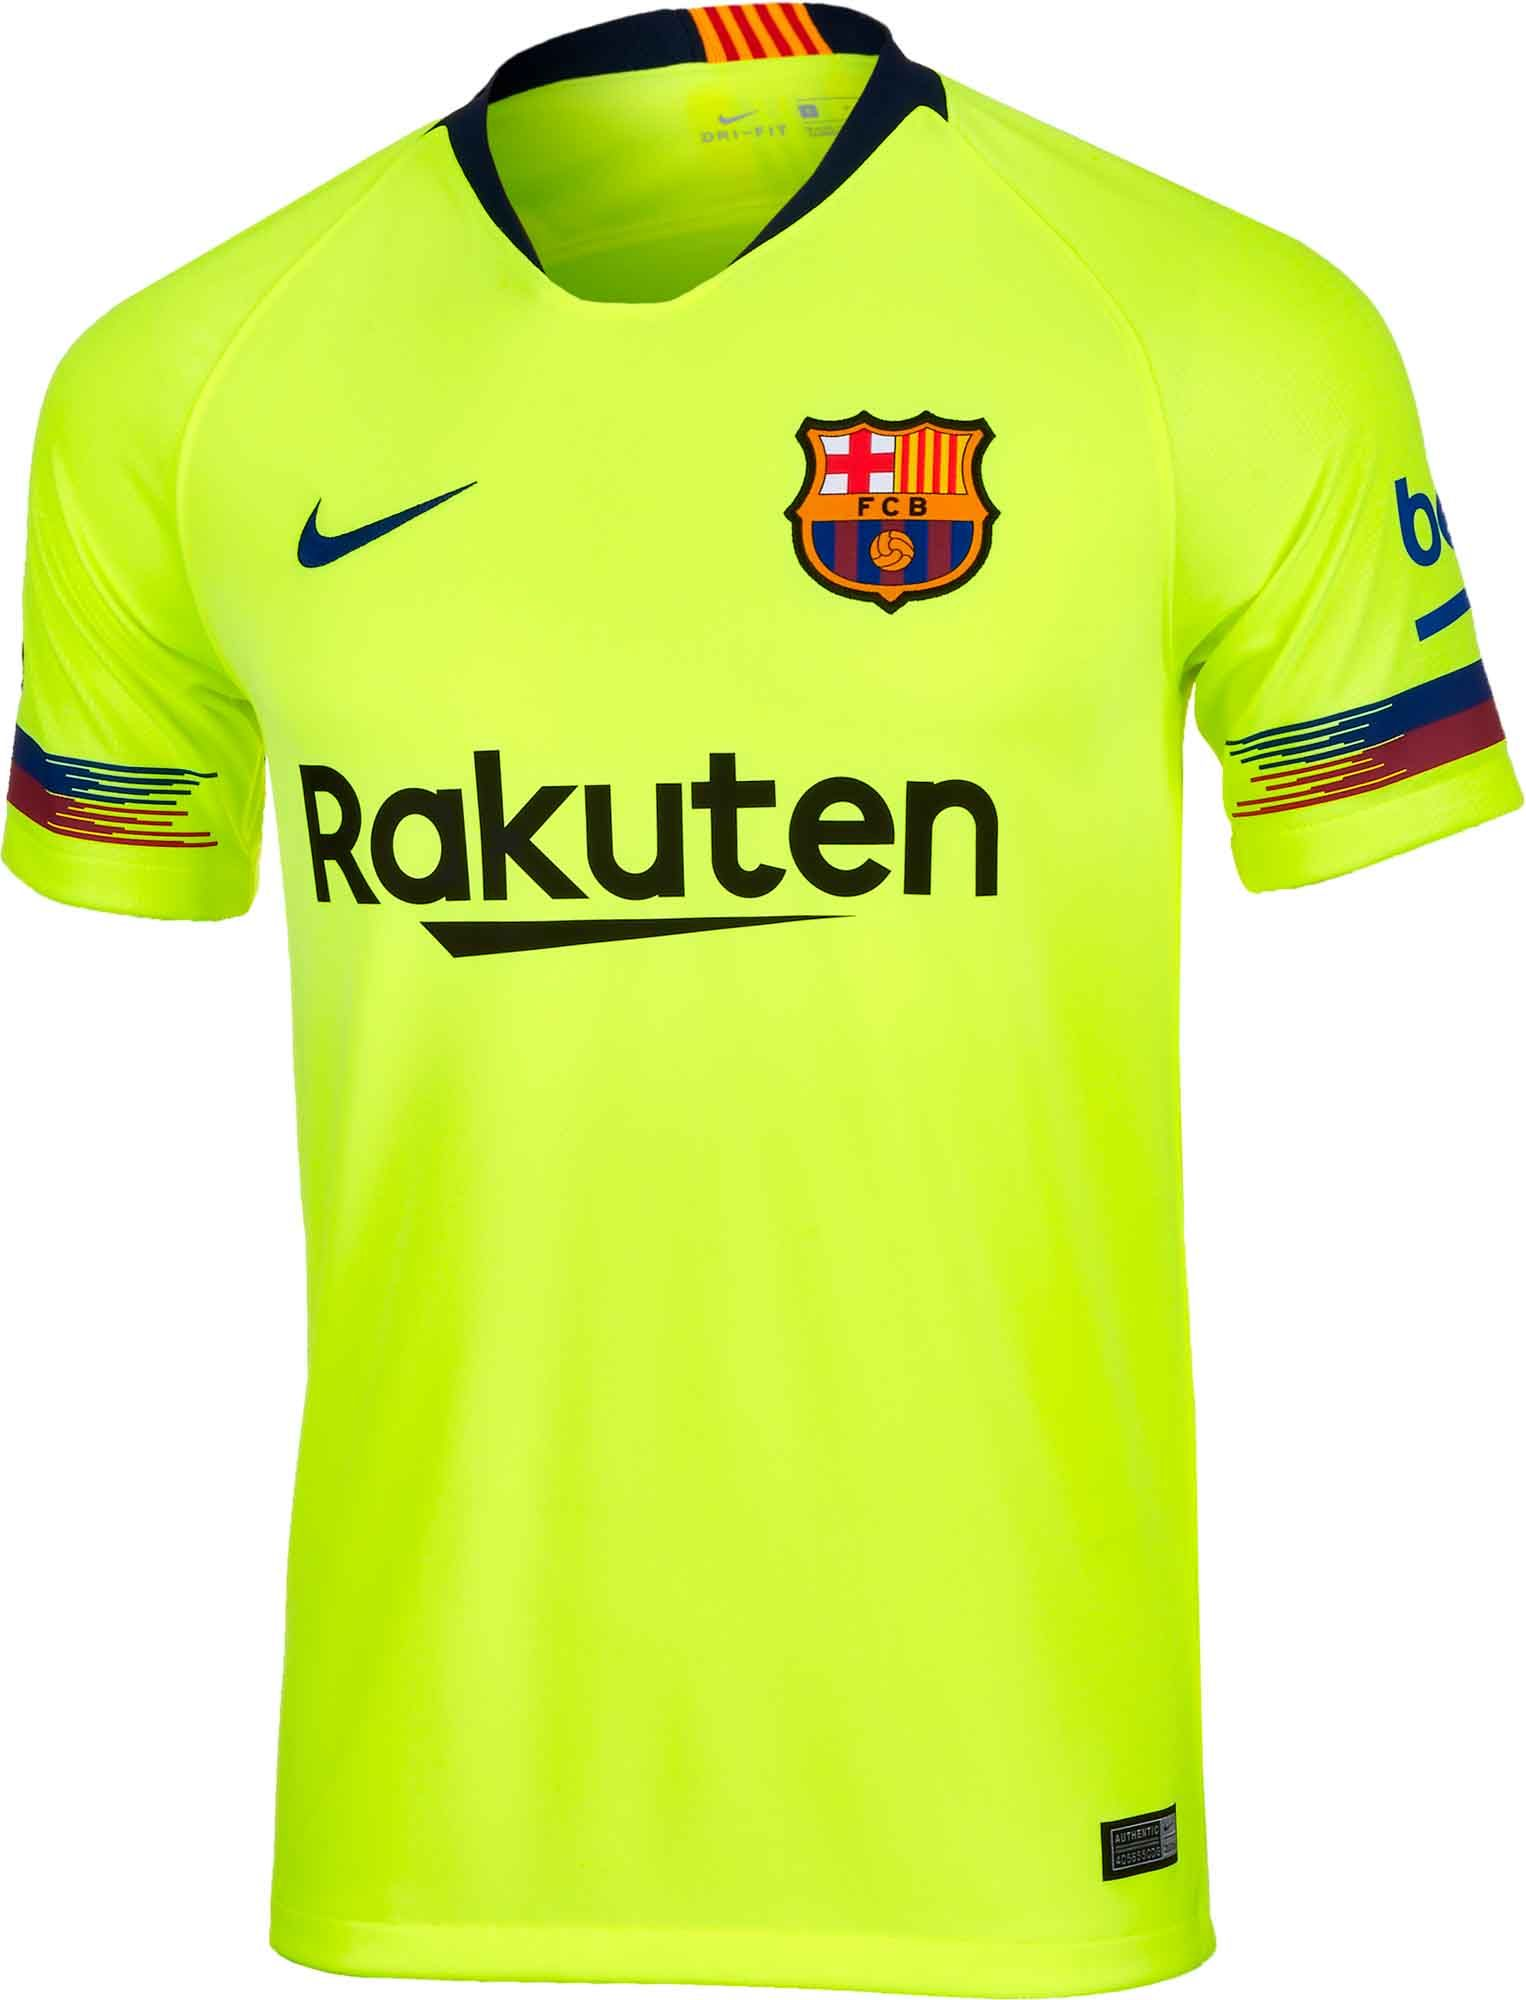 cd8d3ee1a 2018 19 Nike FC Barcelona Away Jersey. Buy it from SoccerPro.